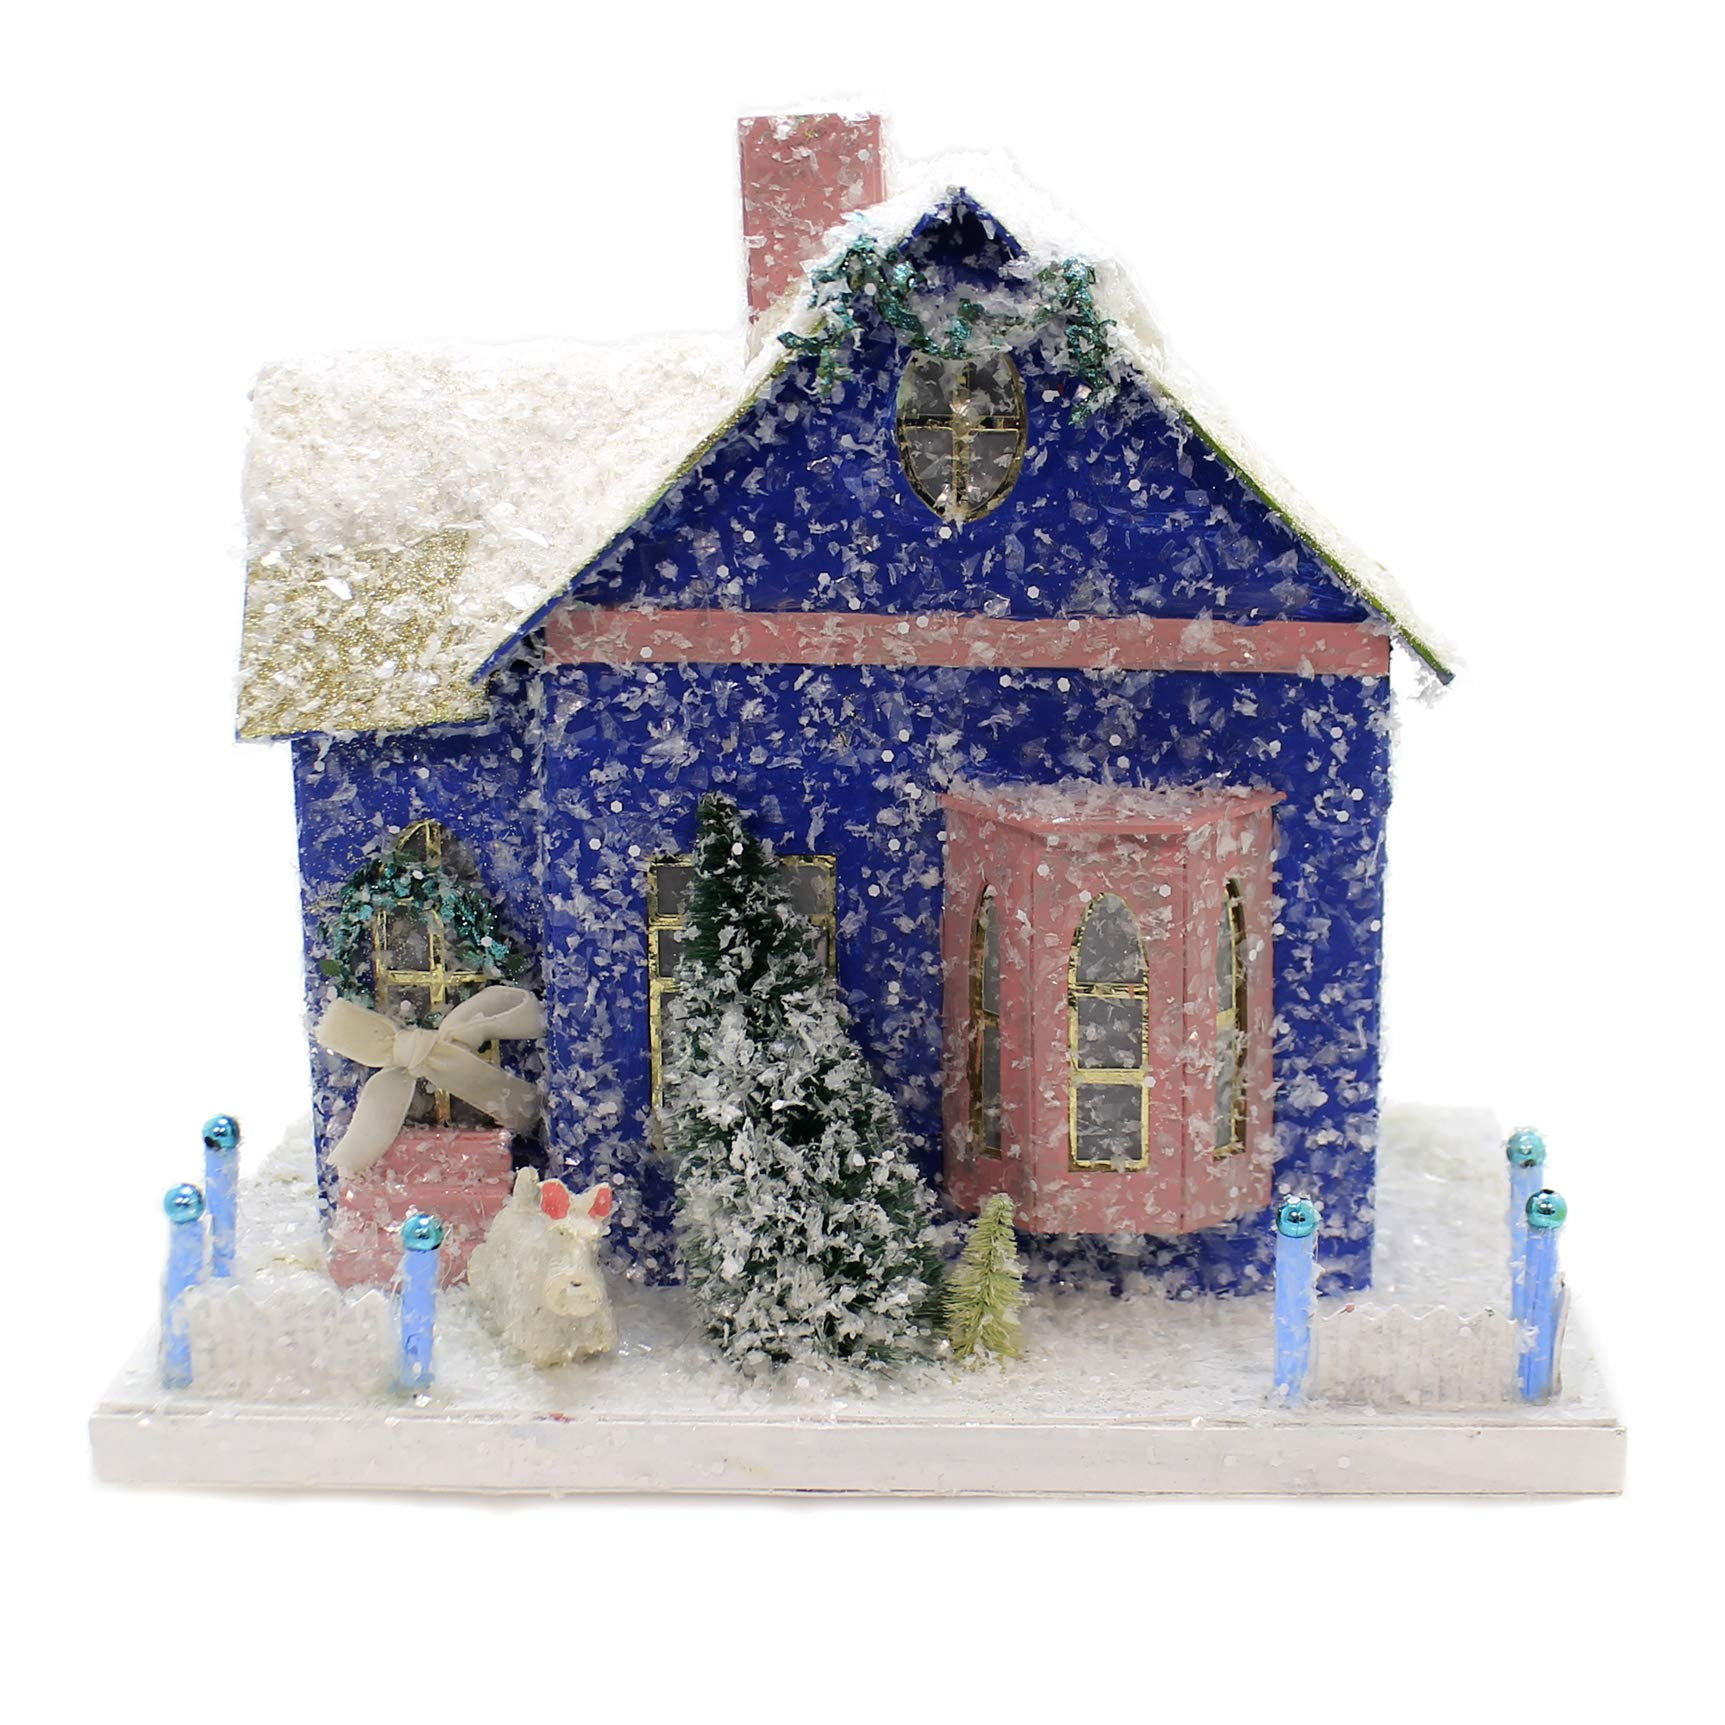 Cody Foster Periwinkle Cottage Paper Mache Christmas Putz Light Up Hou272